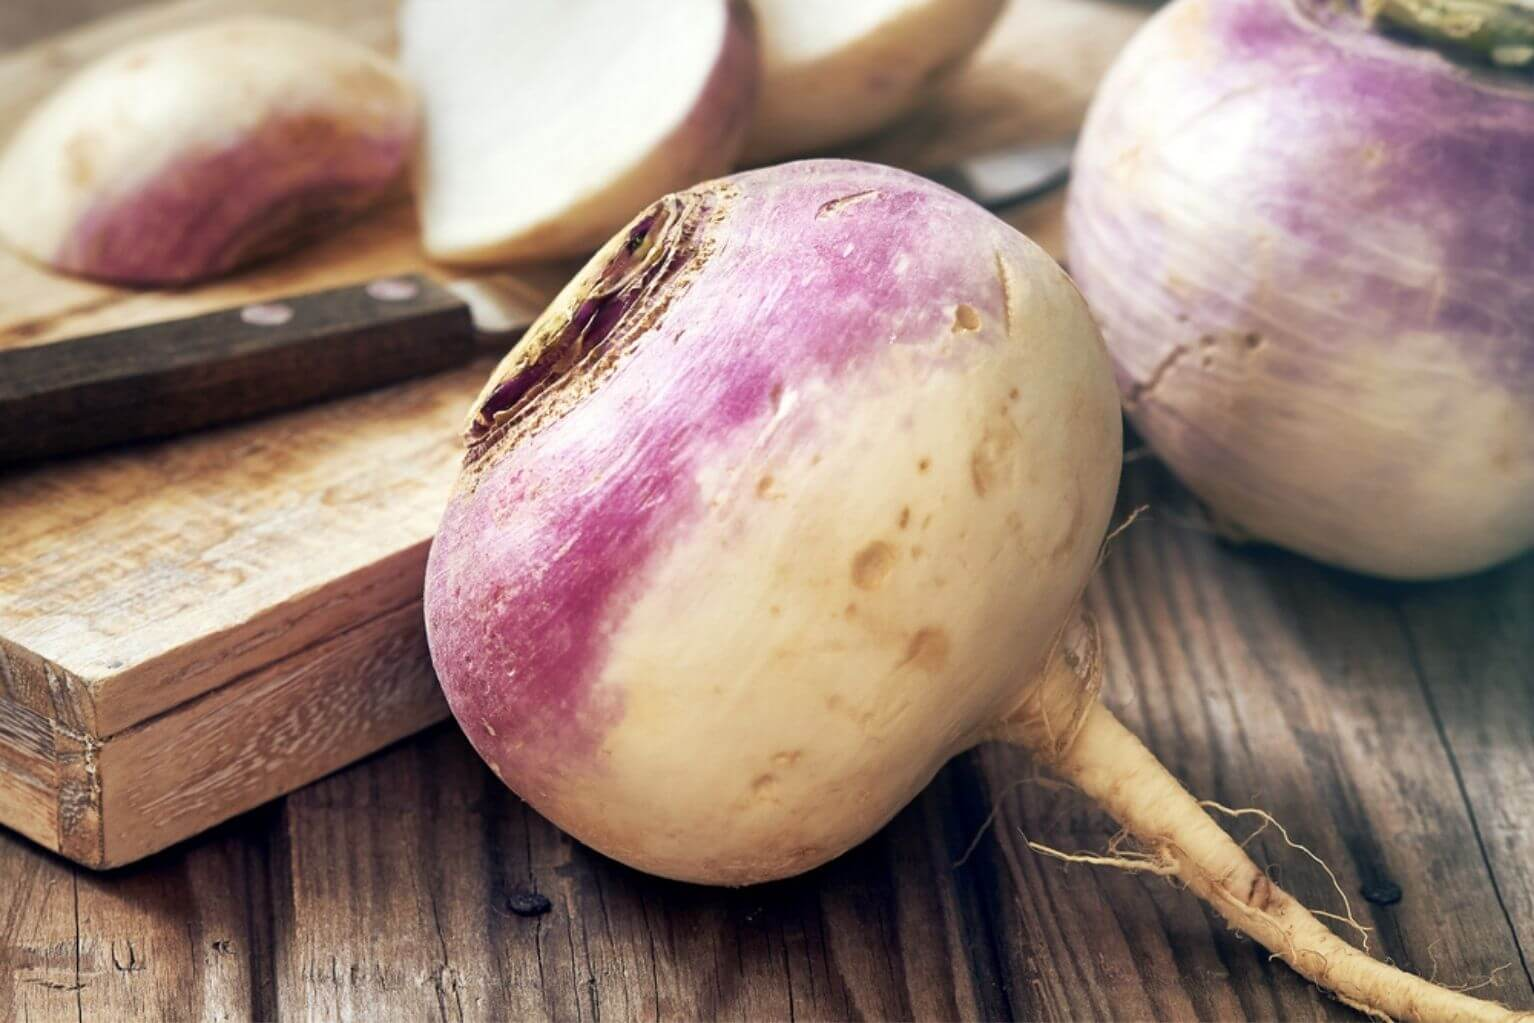 Three turnips next to a cutting board with a knife on top.